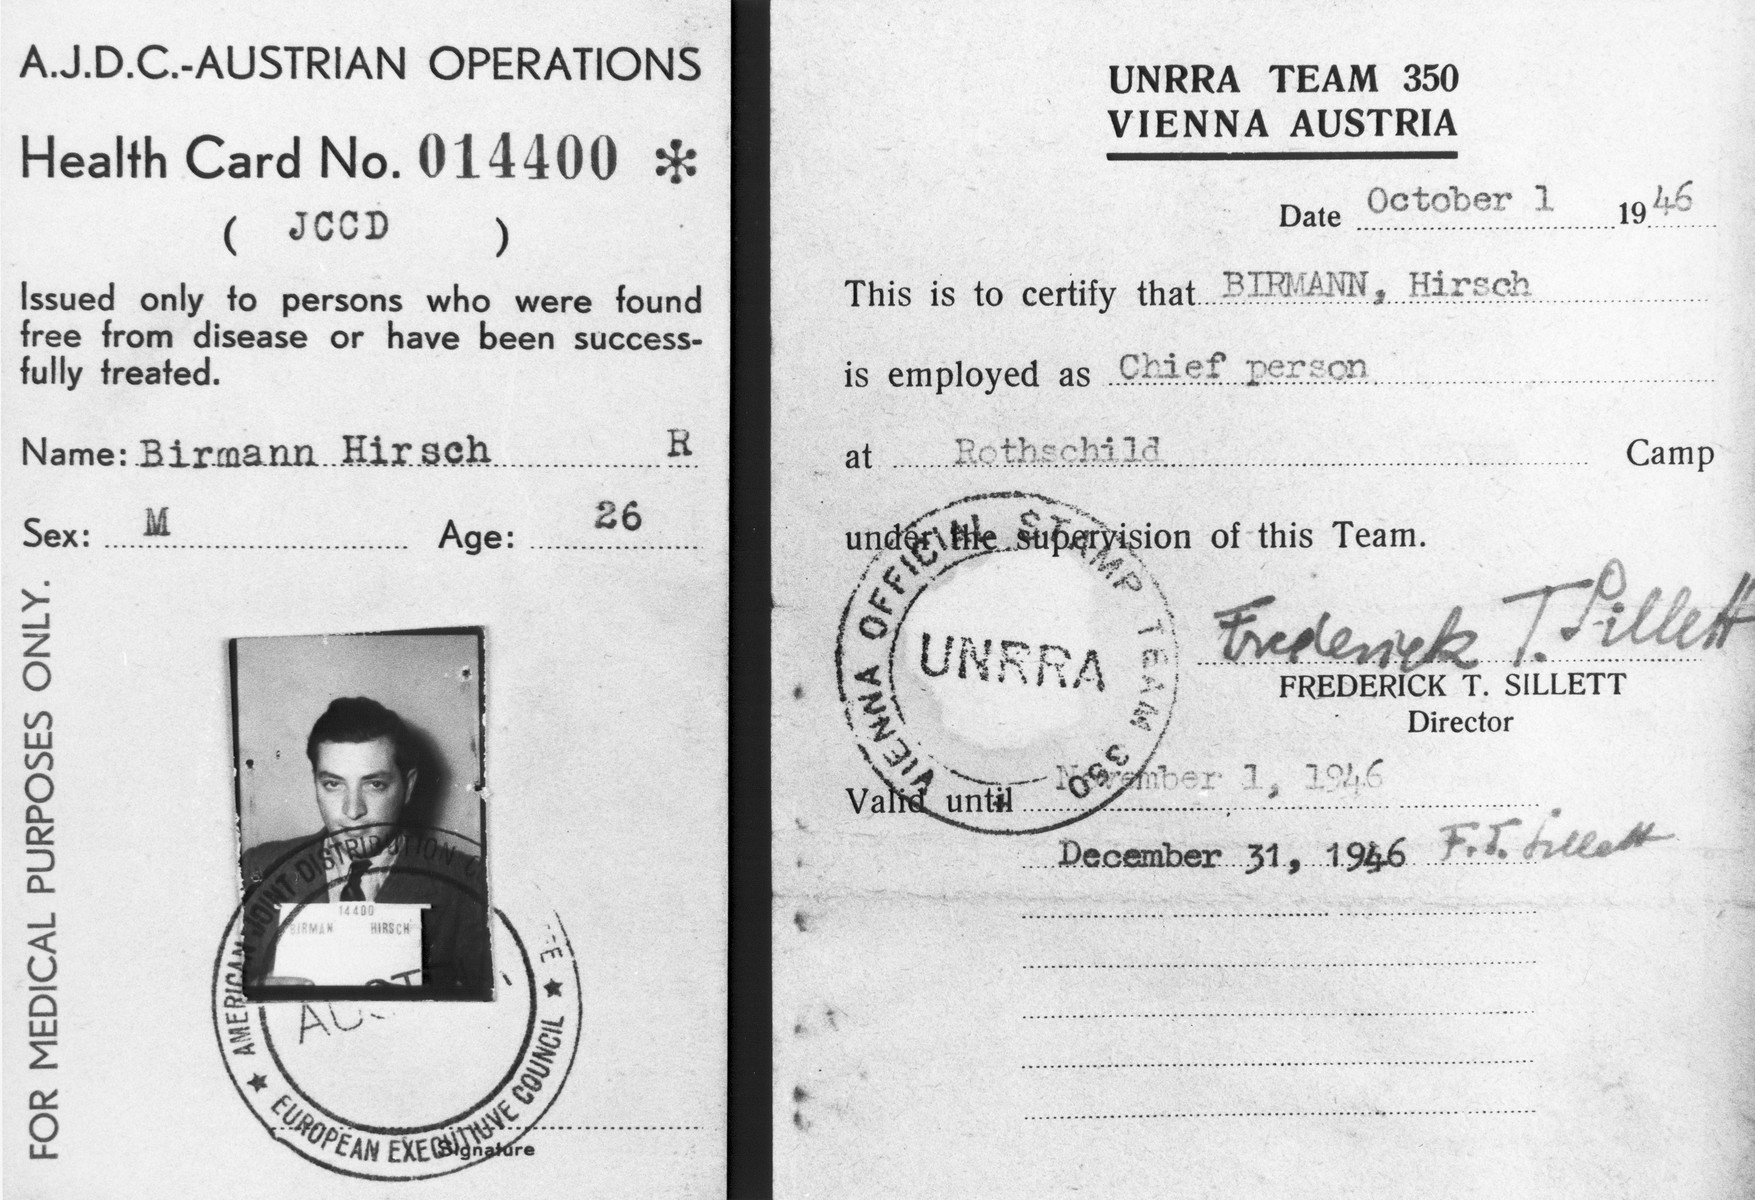 Health card issued by the American Joint Distribution Committee Austrian Operations to Jewish DP Hirsch Birman certifying that he is an employee of the Rothschild Hospital displaced persons camp in Vienna, under the supervision of UNRRA team 350.